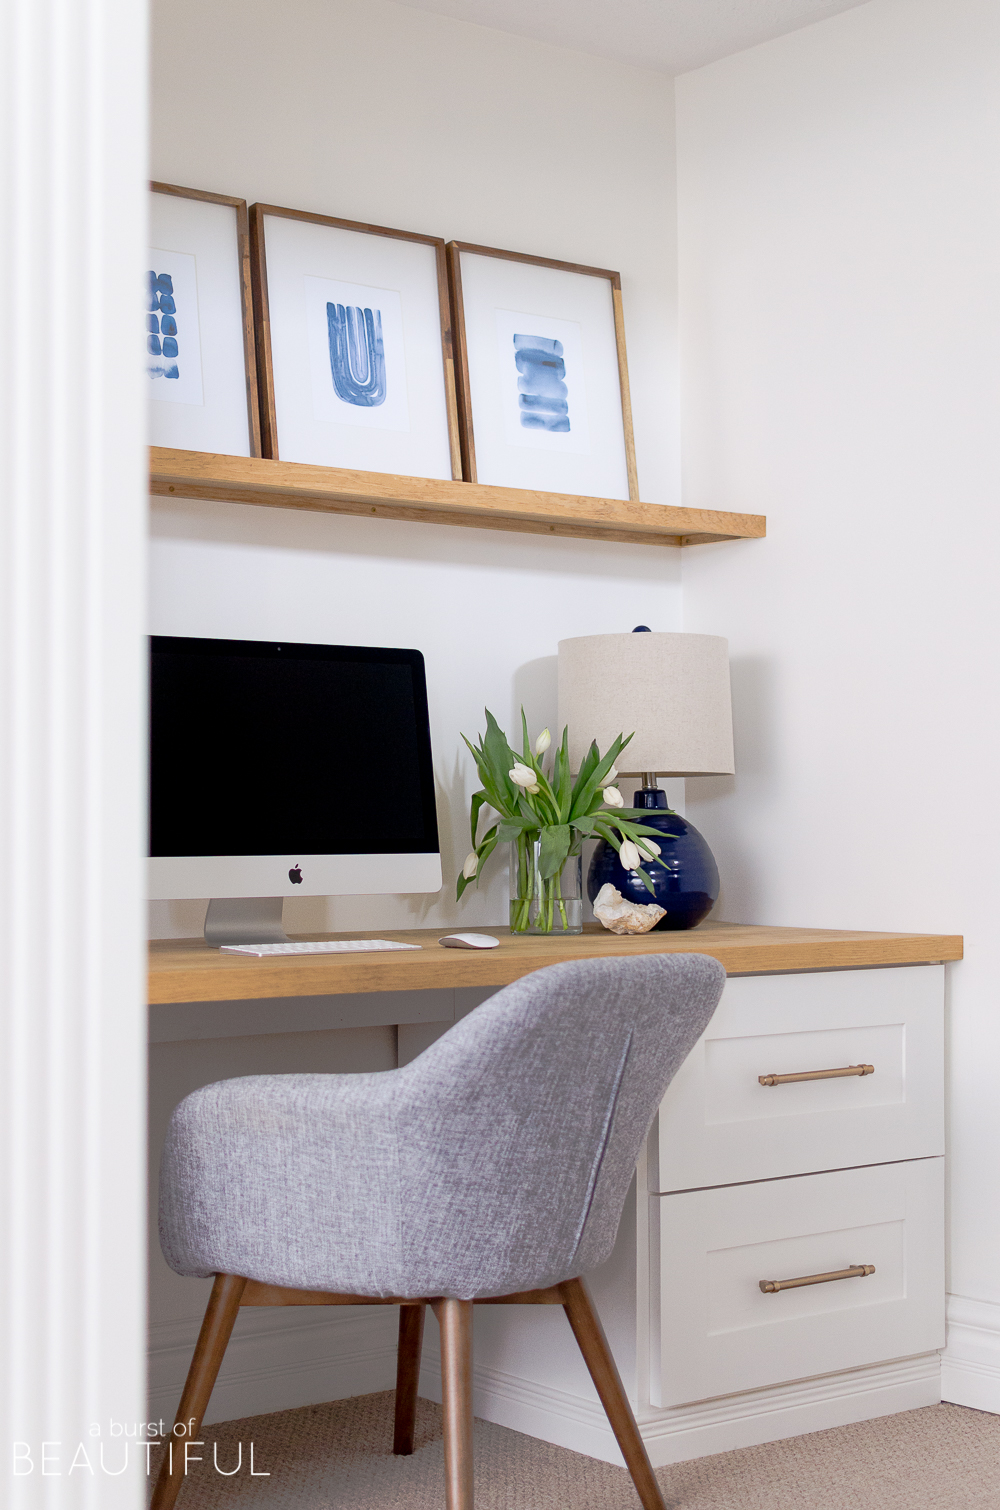 A small nook provides the perfect space for home office or studio, with this simple built-in desk